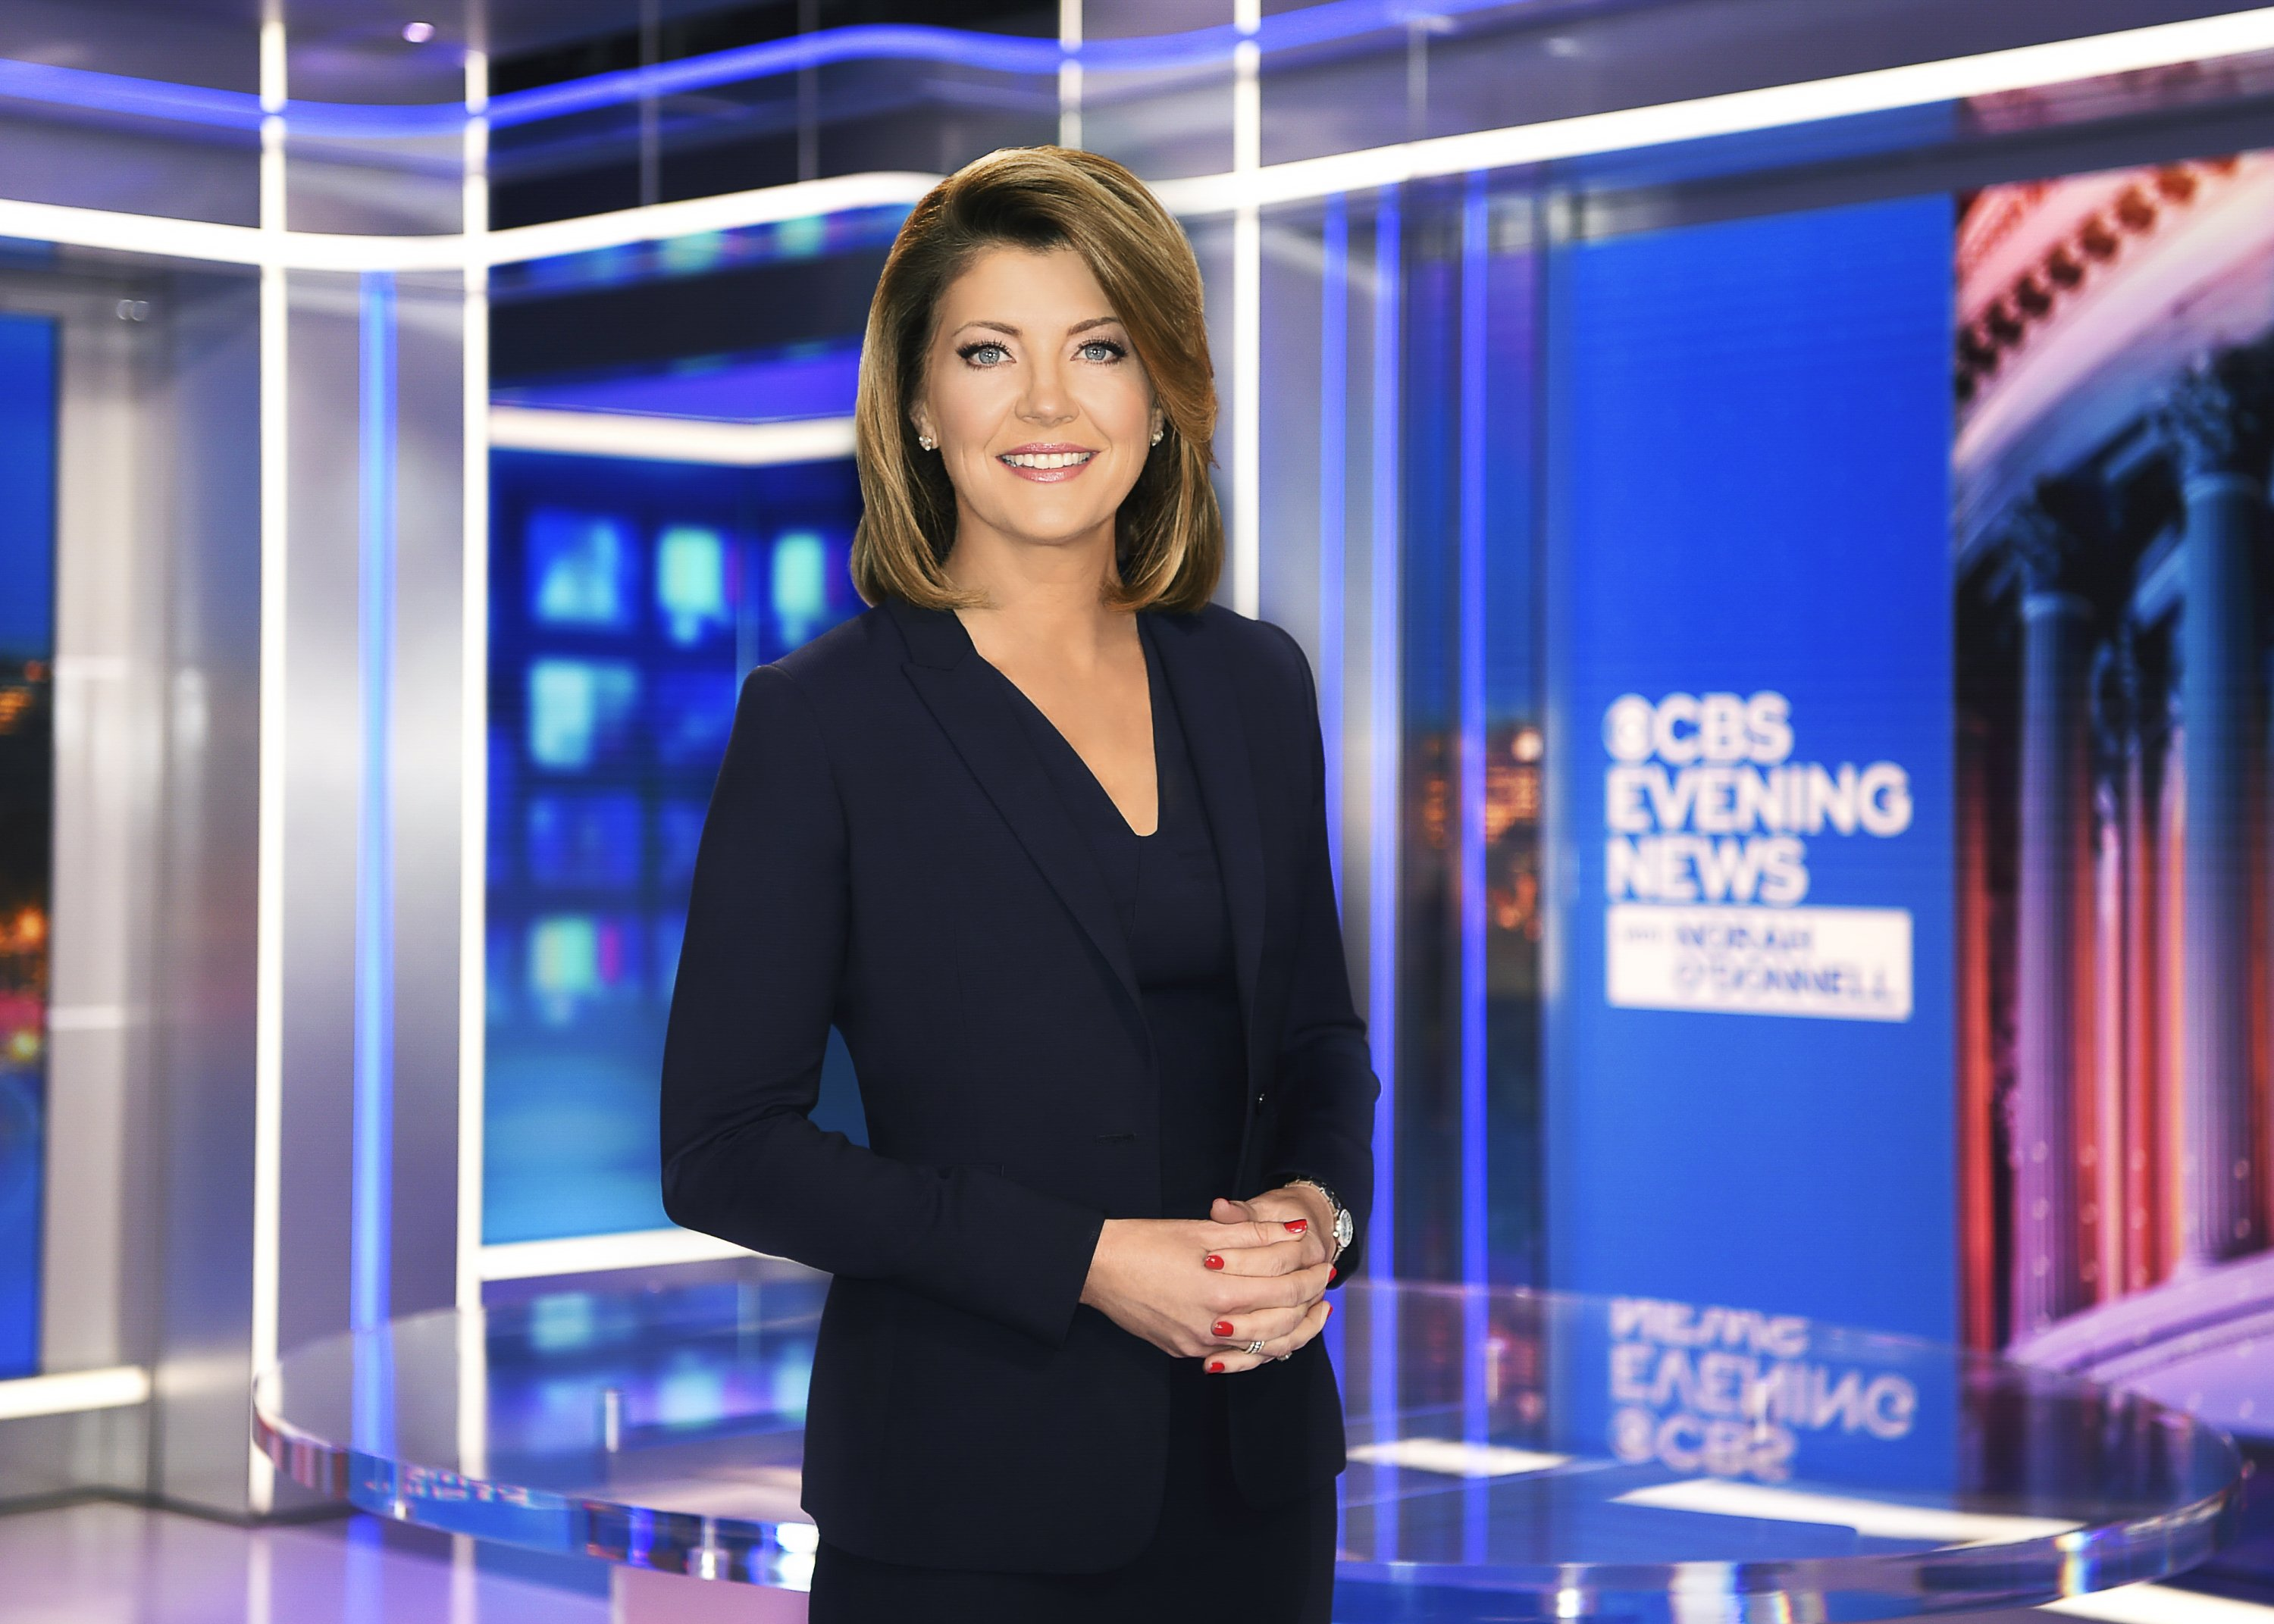 Norah O'Donnell, Anchor and Managing Editor of CBS Evening News with Norah O'Donnell | Photo: Getty Images